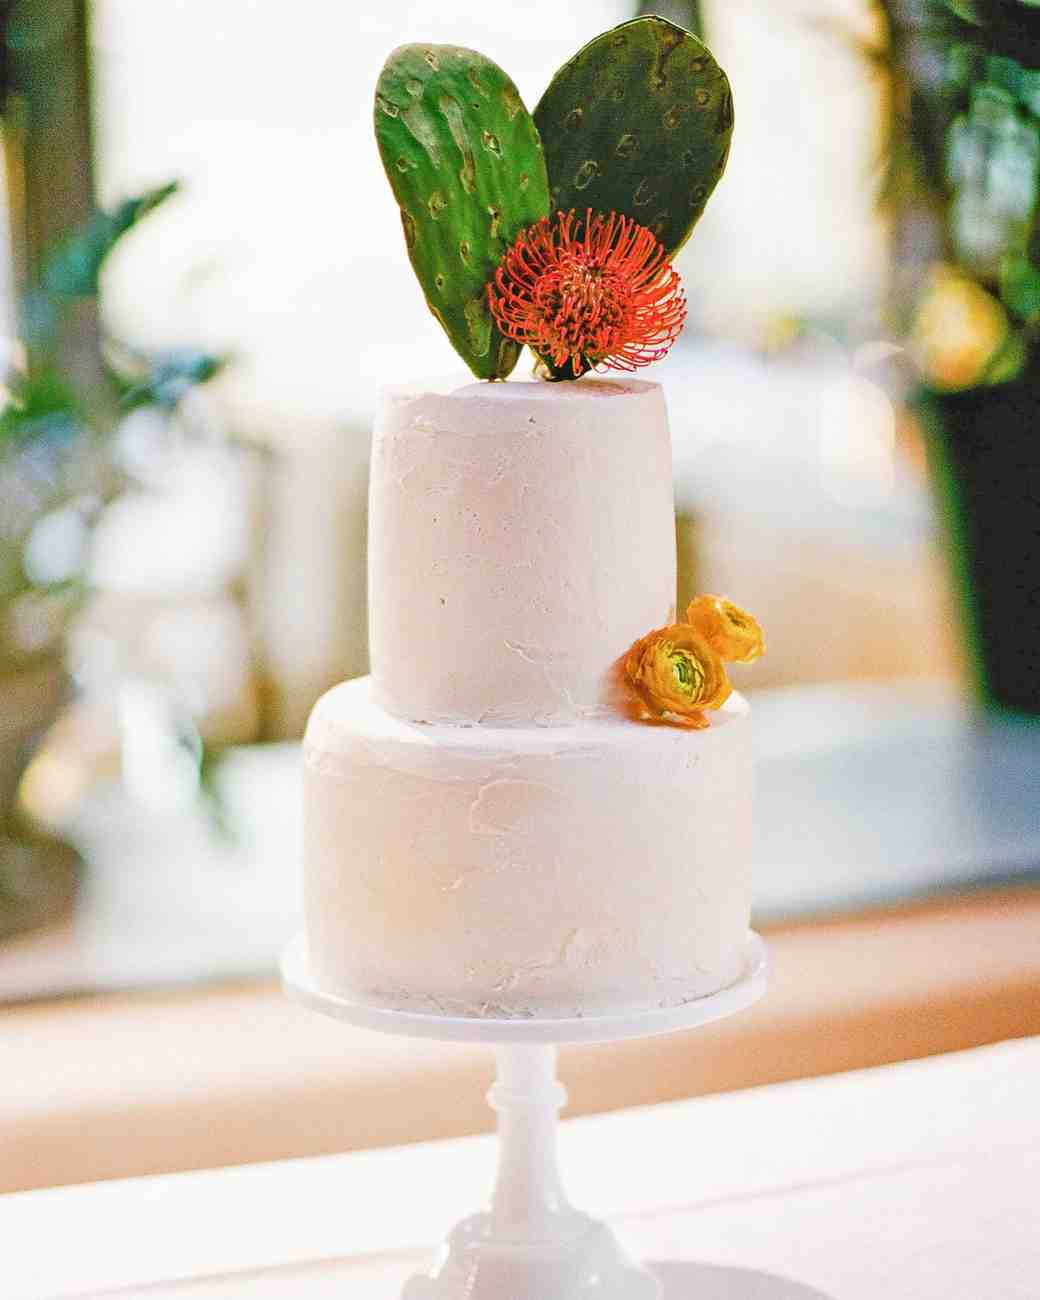 Wedding Cake with Cactus Topper